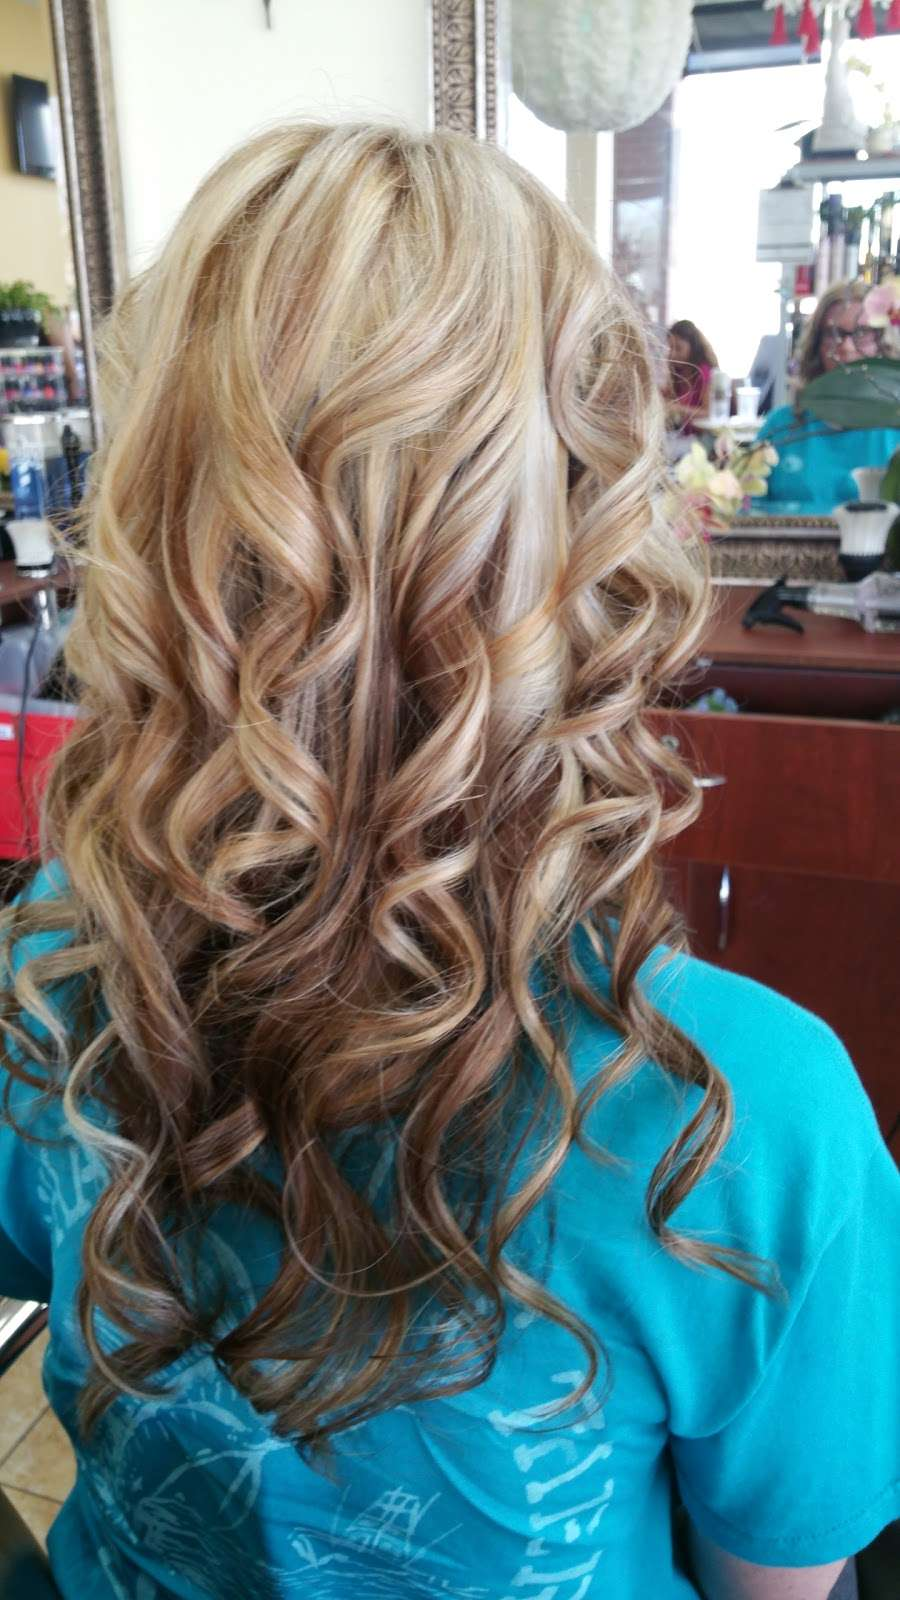 Pro Touch Salon - hair care    Photo 6 of 10   Address: 2746 Manvel Rd, Pearland, TX 77584, USA   Phone: (281) 997-7277